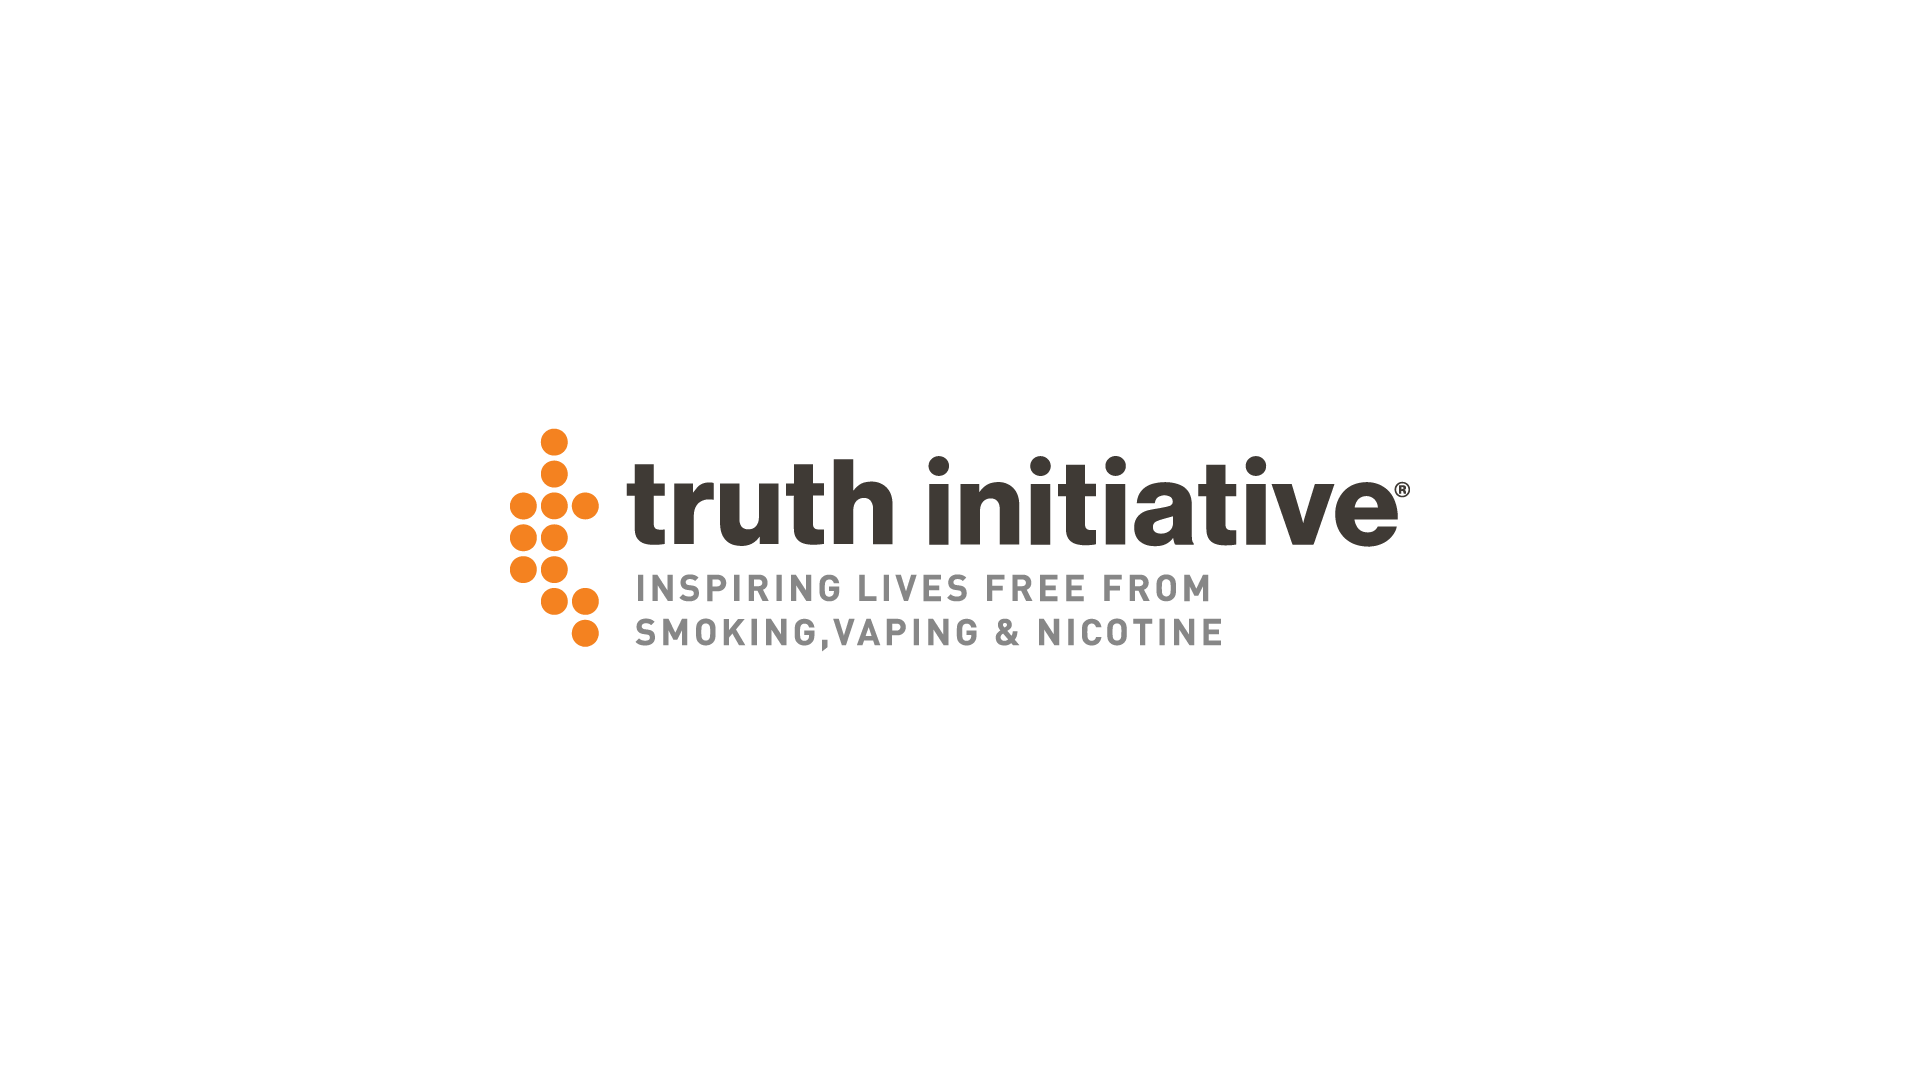 Logo of the Truth Initiative